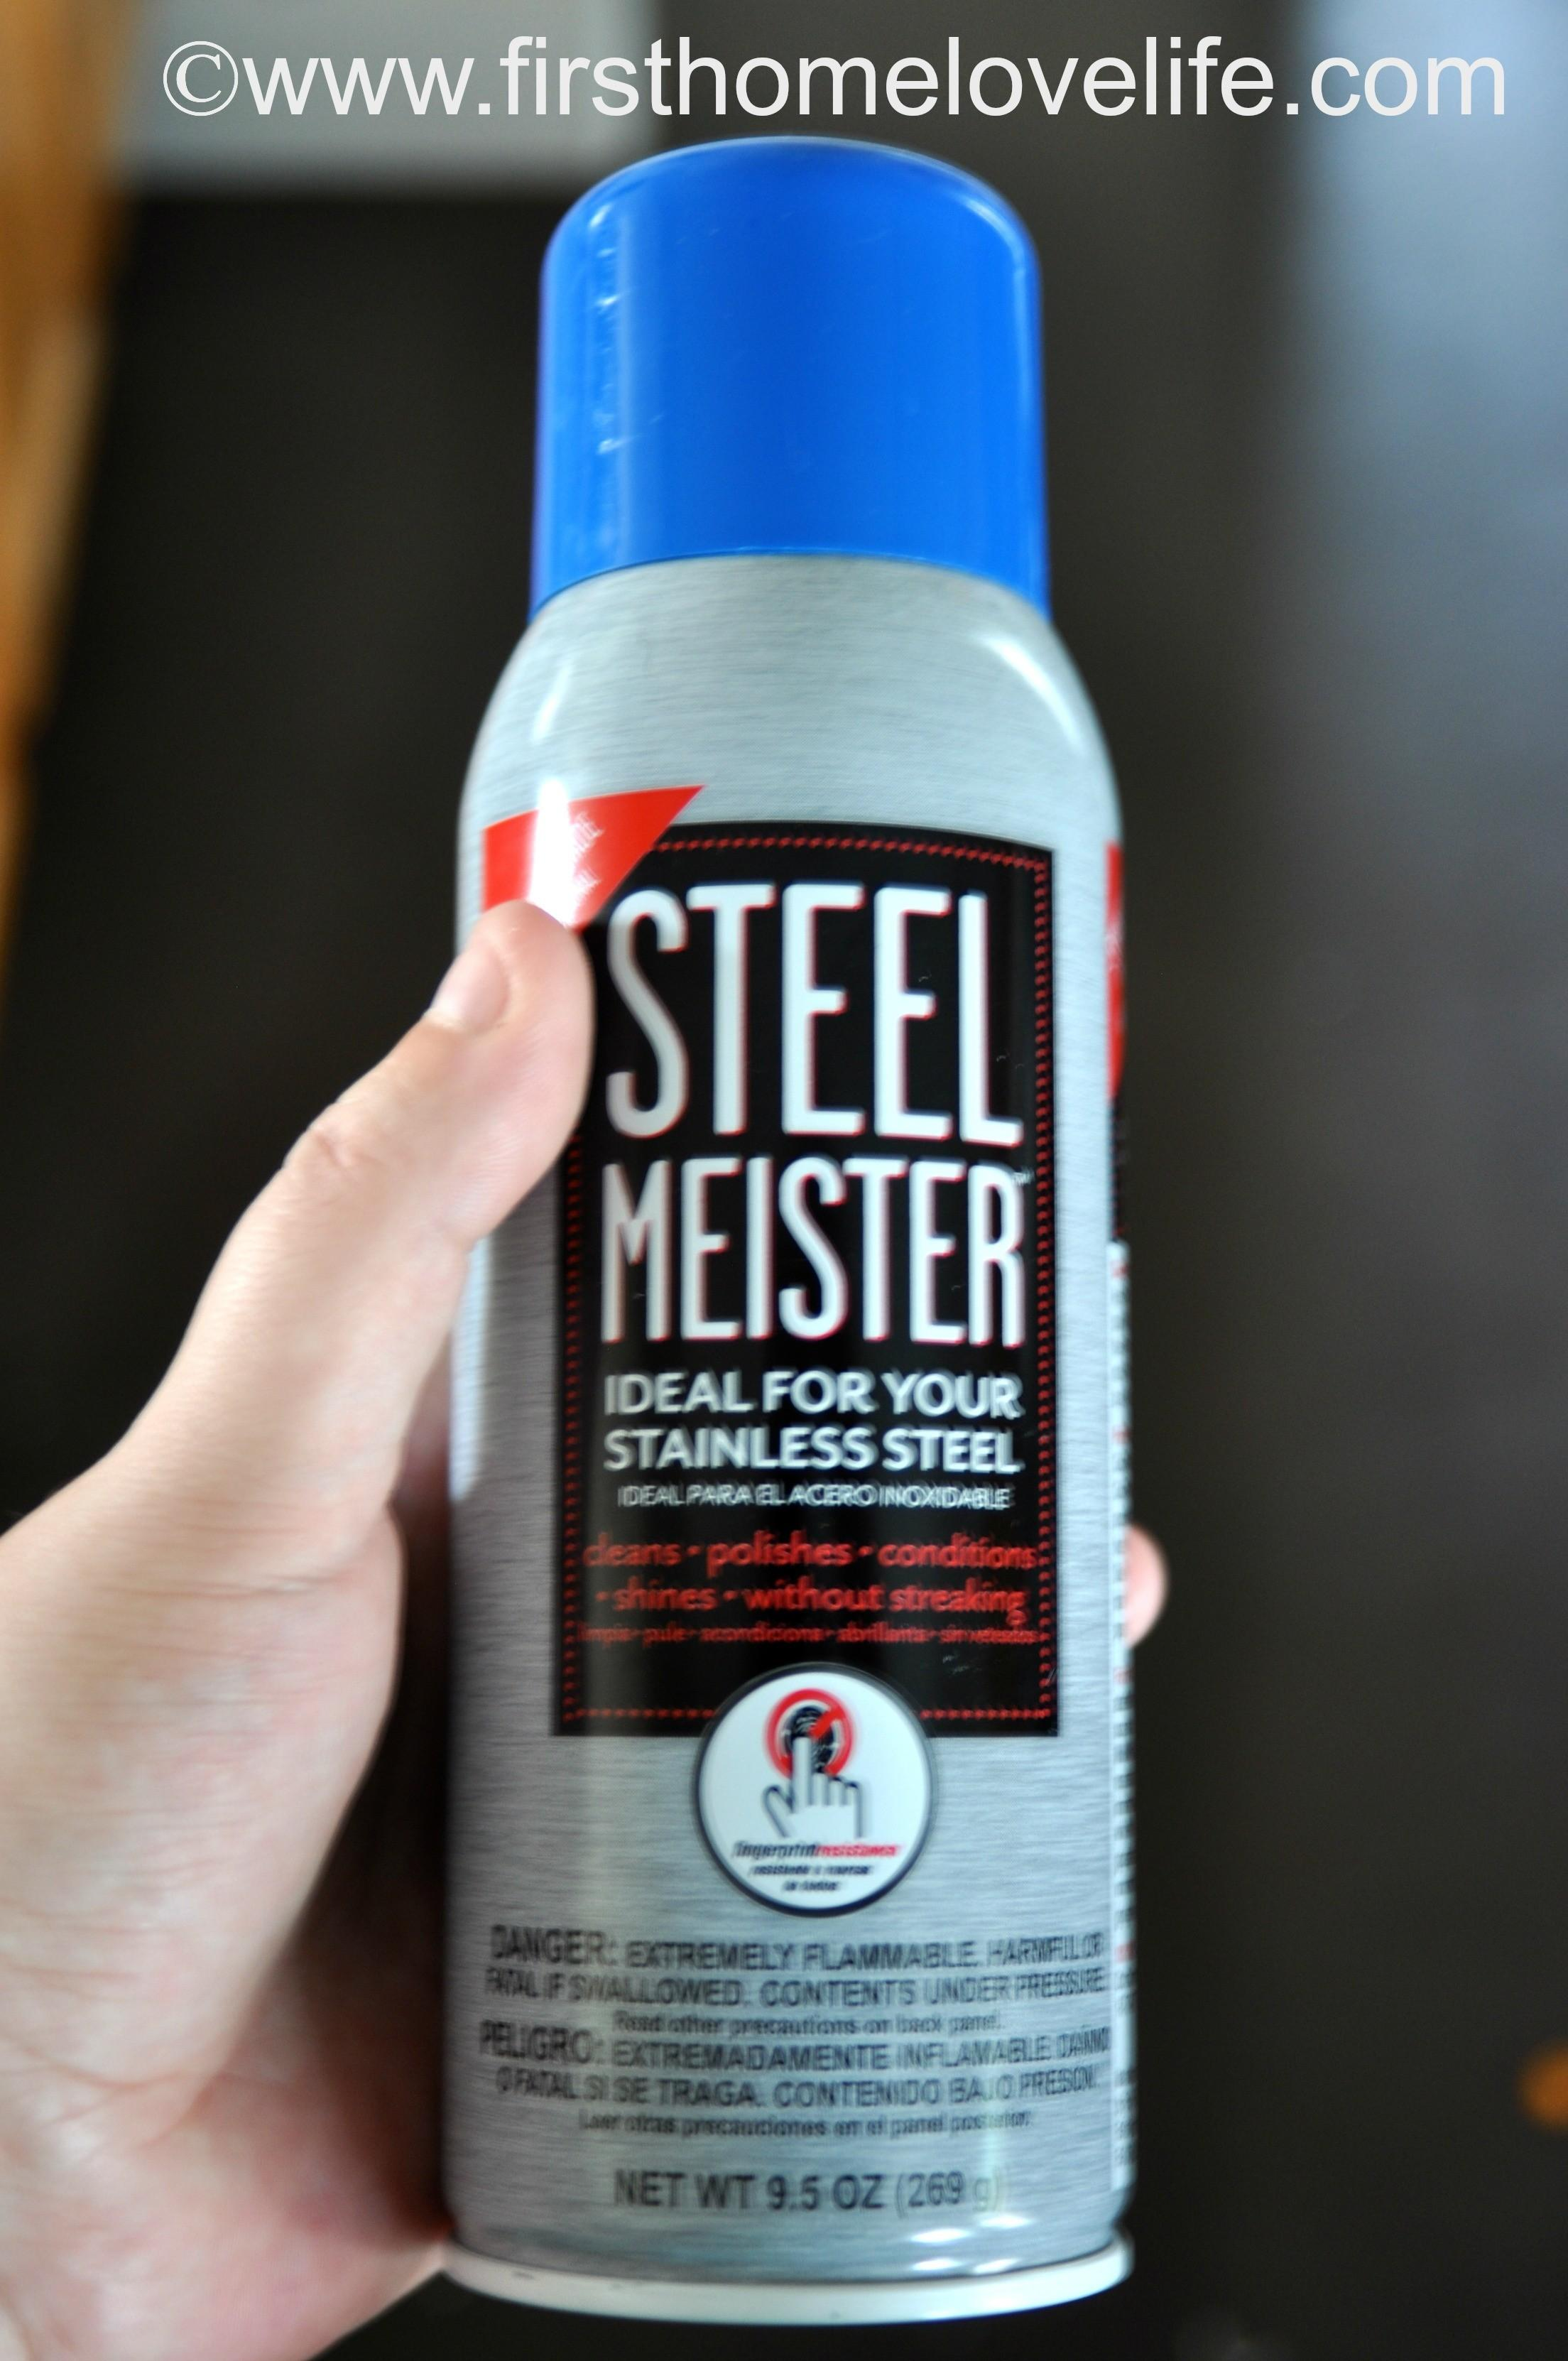 Clean Stainless Steel Meister First Home